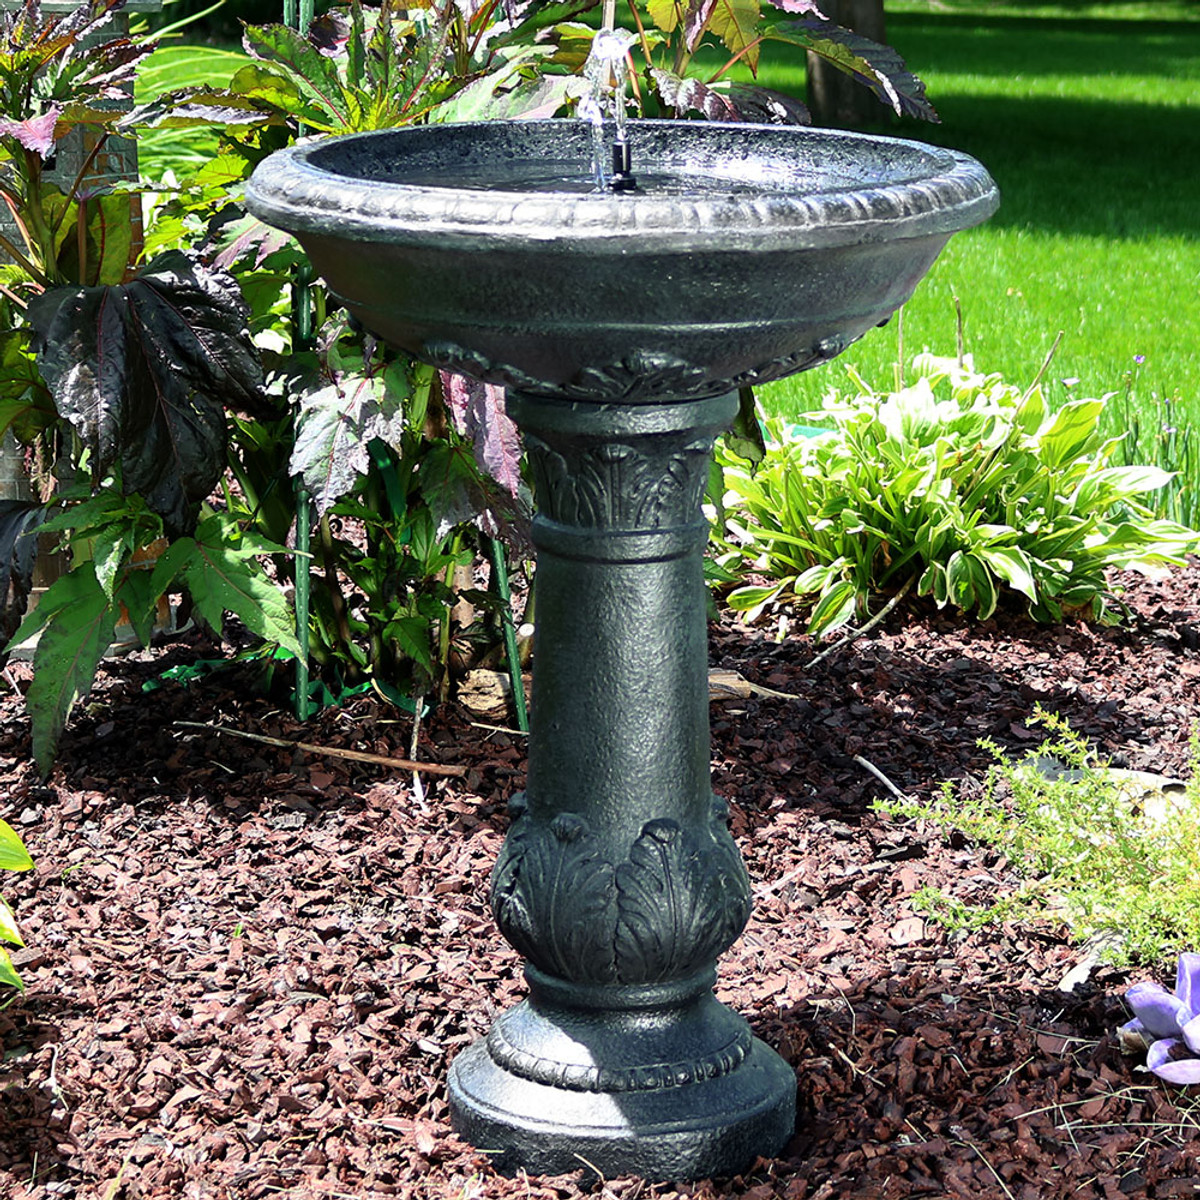 Exceptionnel Sunnydaze Oasis Solar On Demand Outdoor Bird Bath Water Fountain, 26 Inch  Tall, Includes Battery Pack